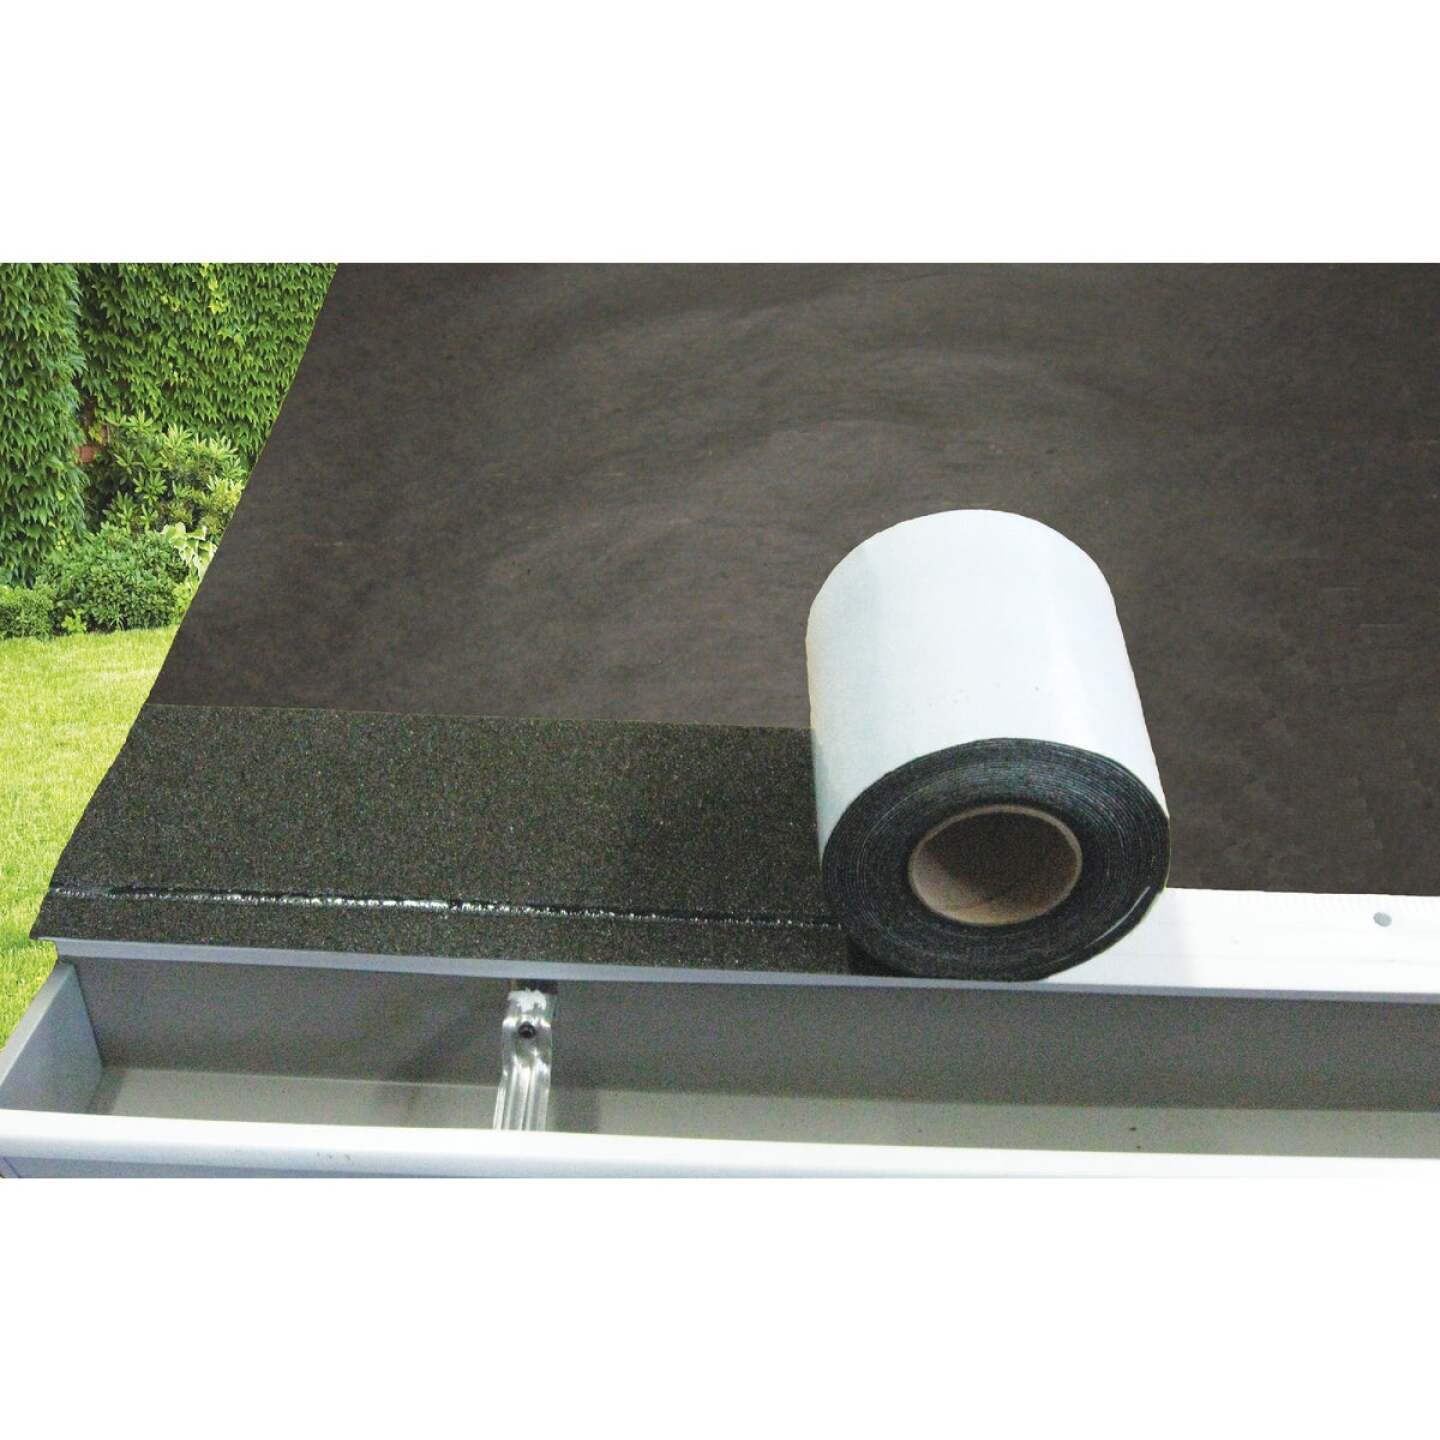 MFM 7.2 In. X 33.5 Ft. Self-Adhesive Shingle Starter Image 2